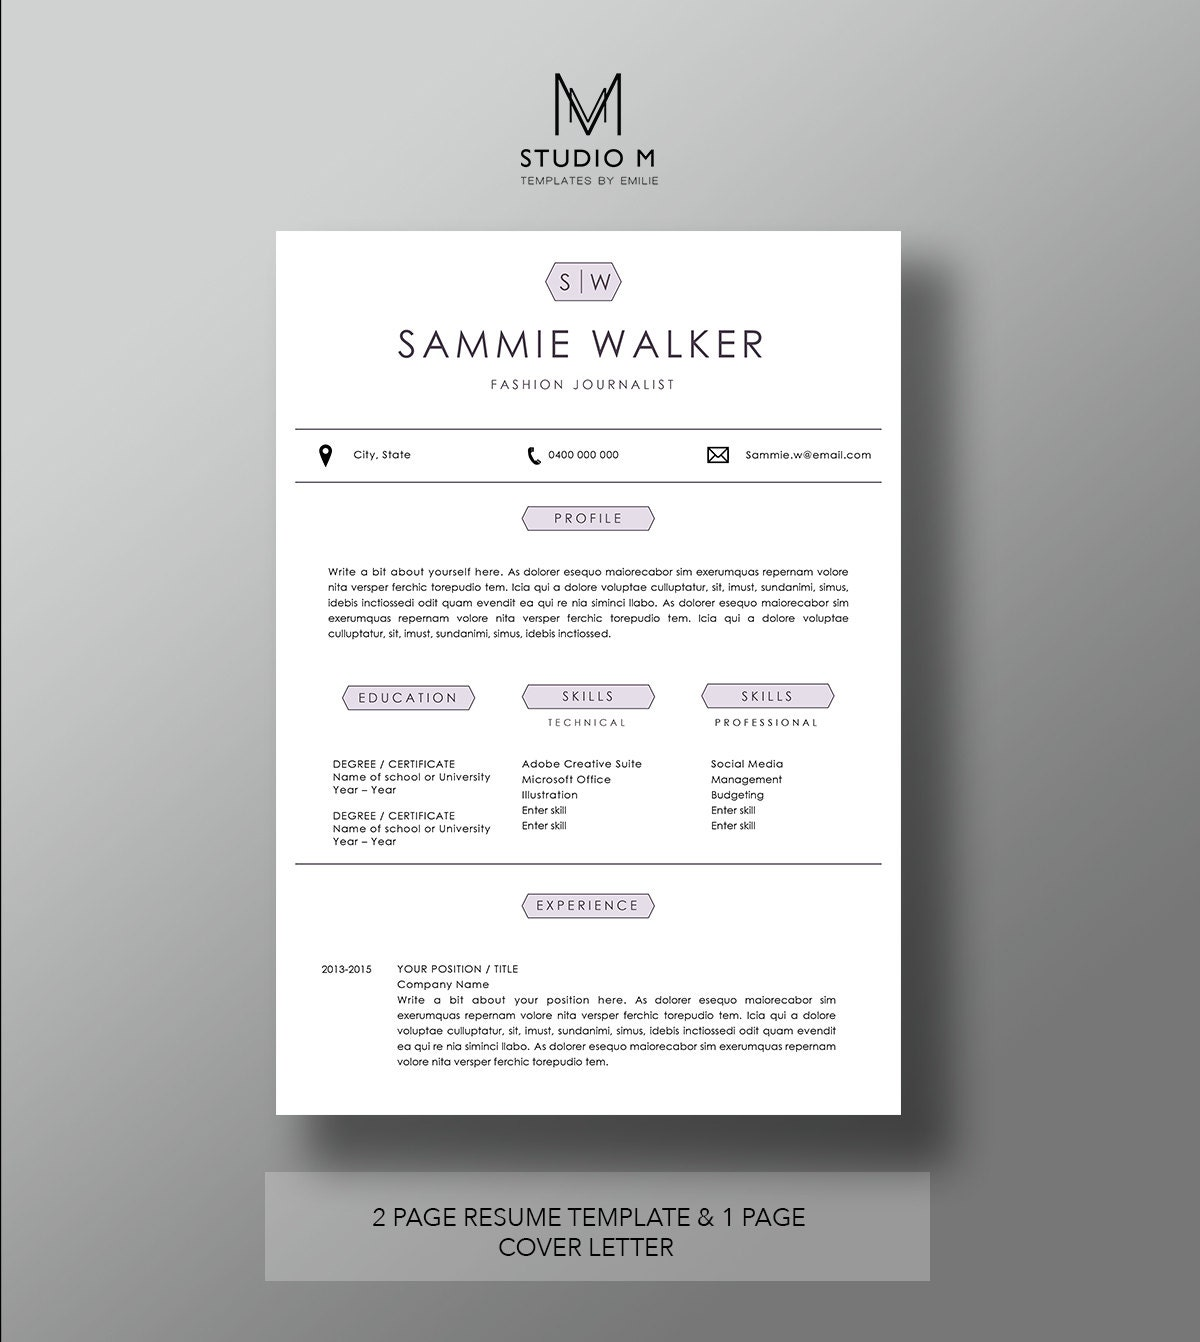 modern resume template page resume page cover letter 128270zoom